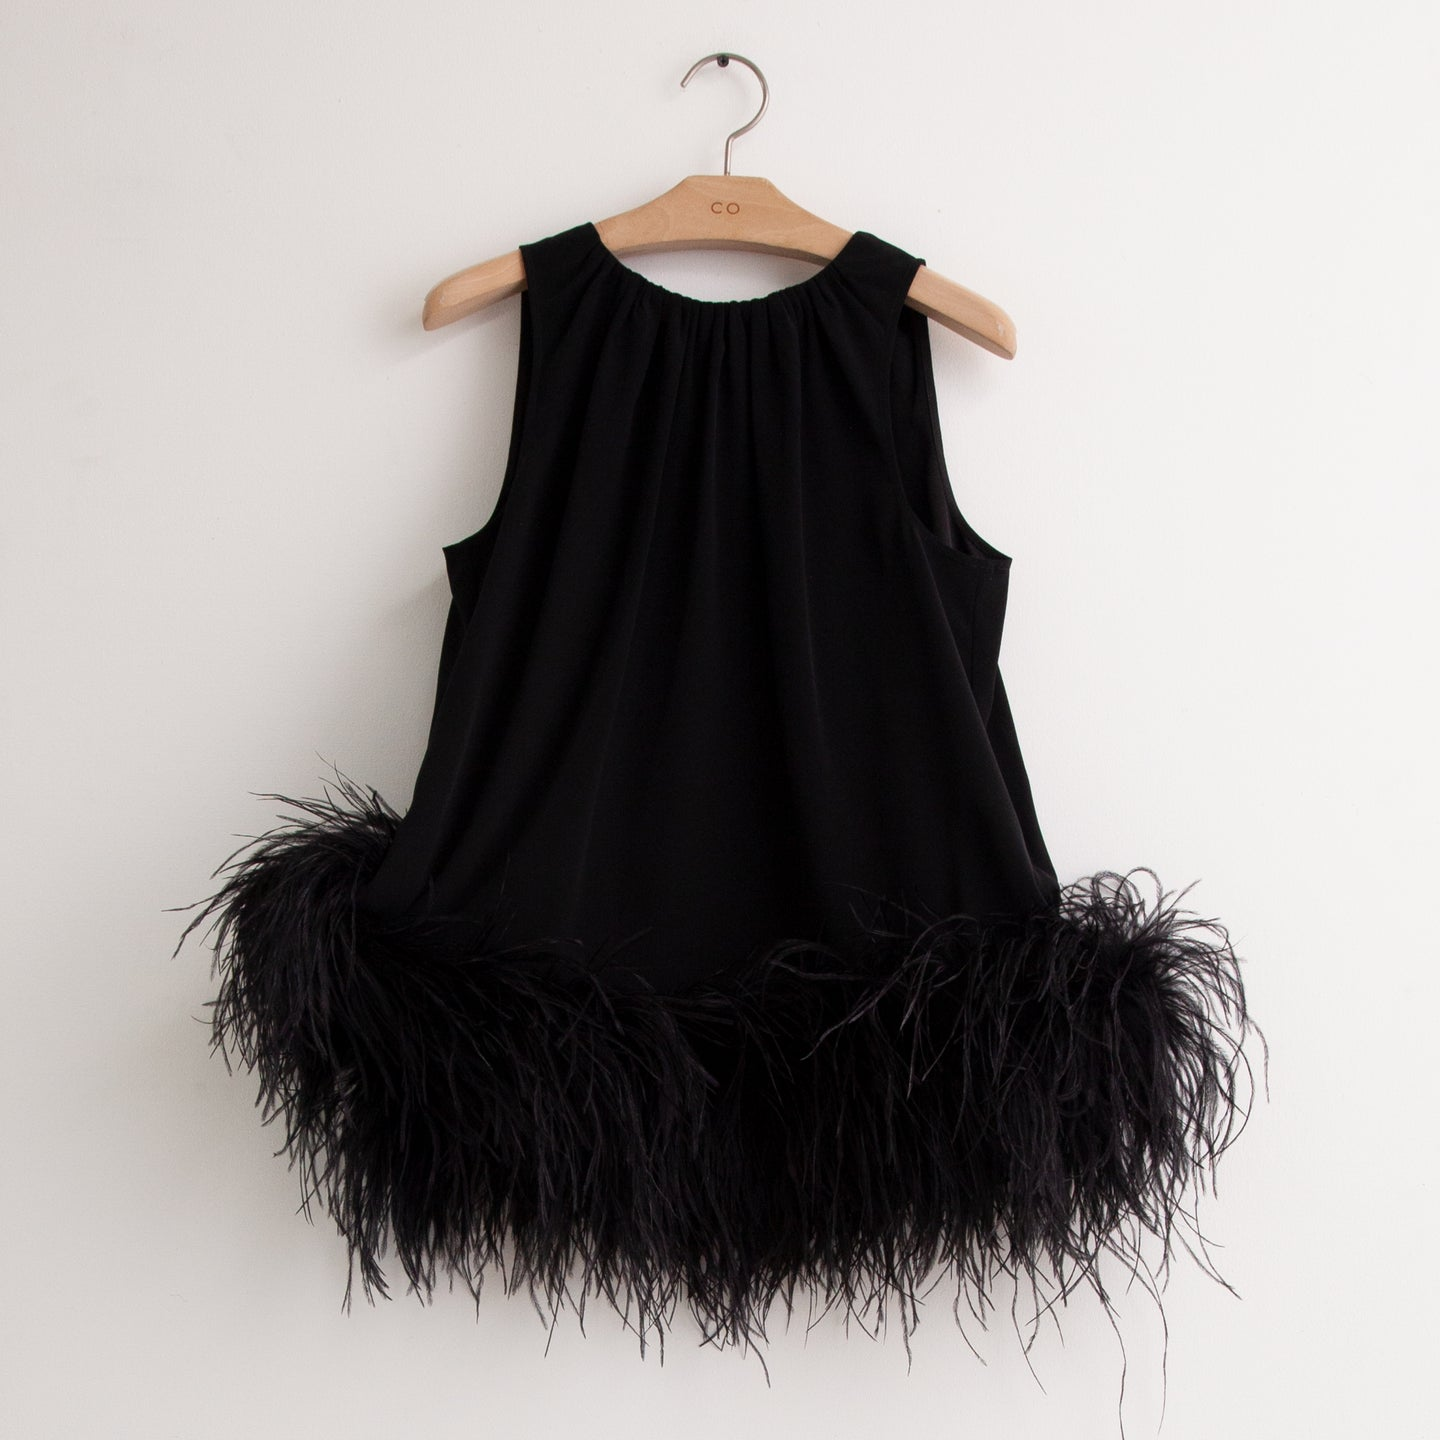 CO - Sleeveless top with feather hem detail and tie back in black stretch crepe.